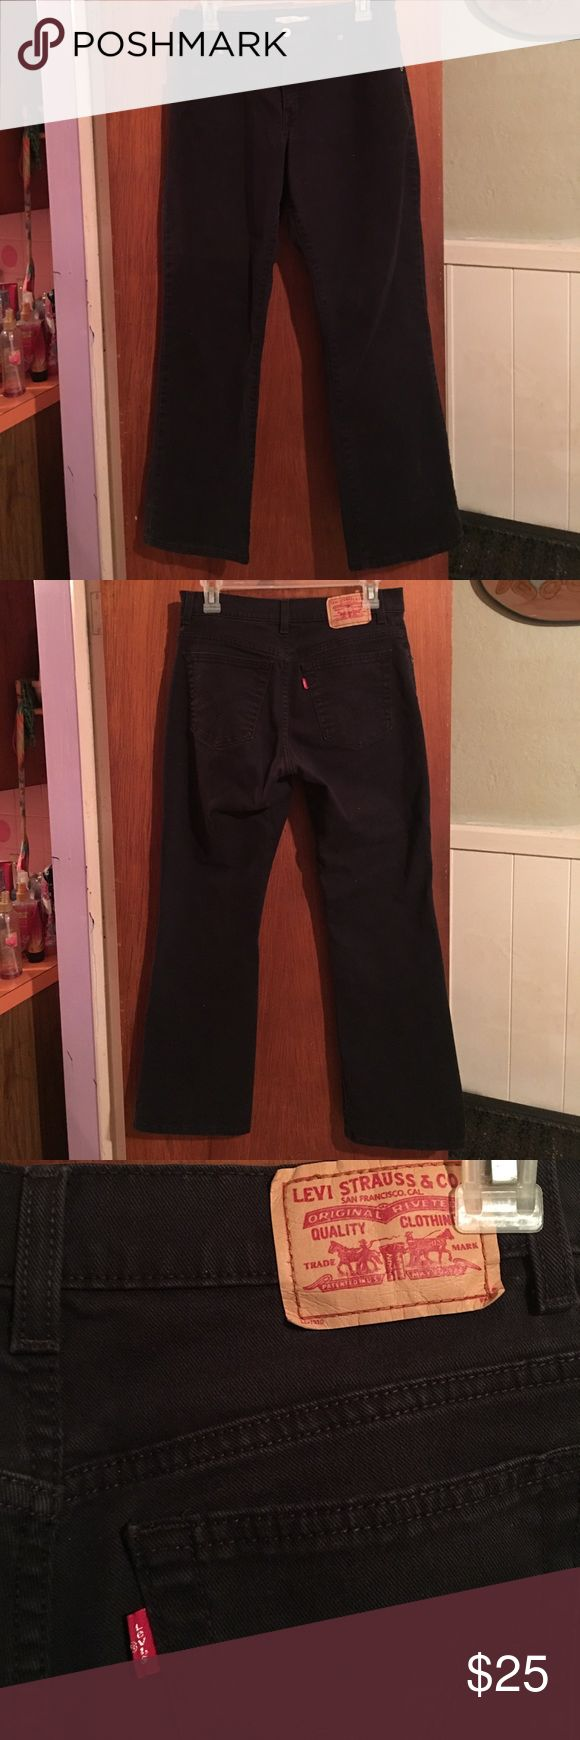 Levi's 550 bootcut black jeans sz 8S Gently worn black levis 550 relaxed, bootcut jeans. The denim does stretch, they aren't faded. Waist is 30 inseam 29 Levi's Jeans Boot Cut